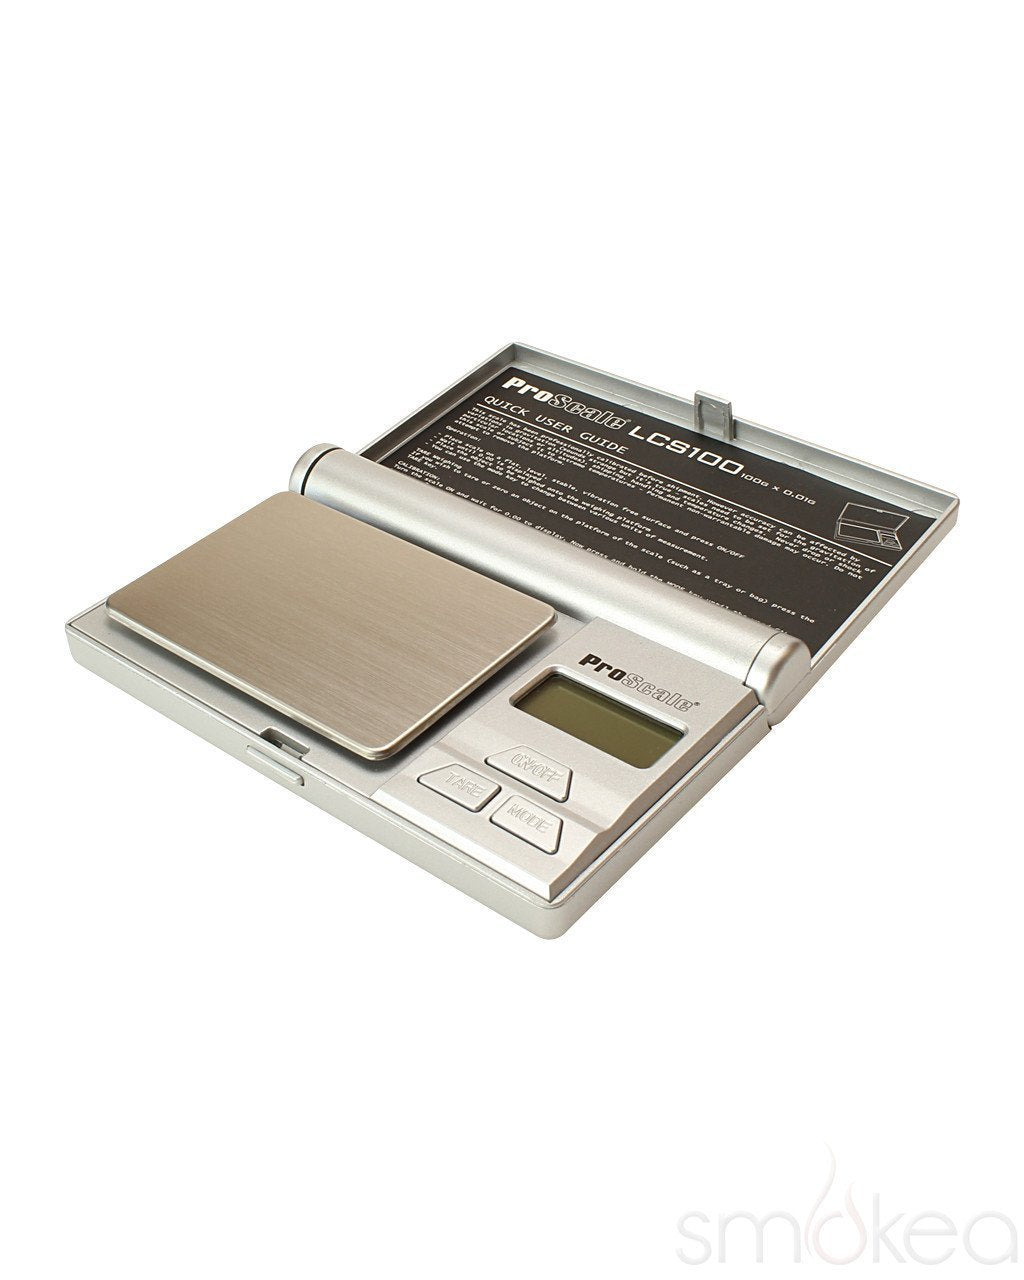 ProScale LCS100 Digital Pocket Scale Scale